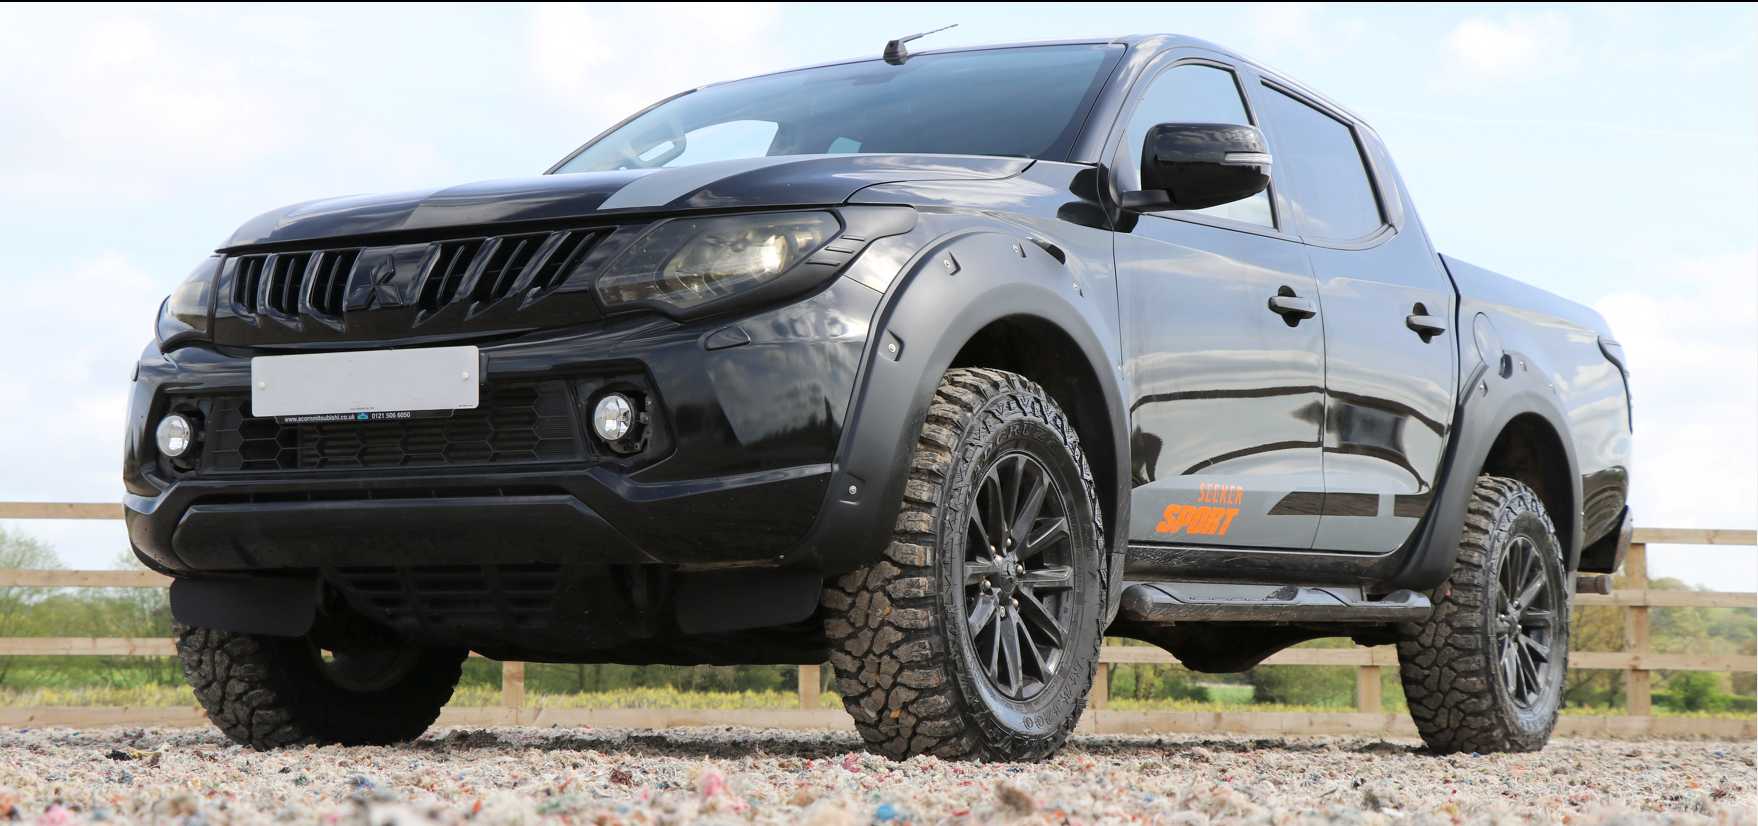 Specialising in 4x4 off-road vehicles...